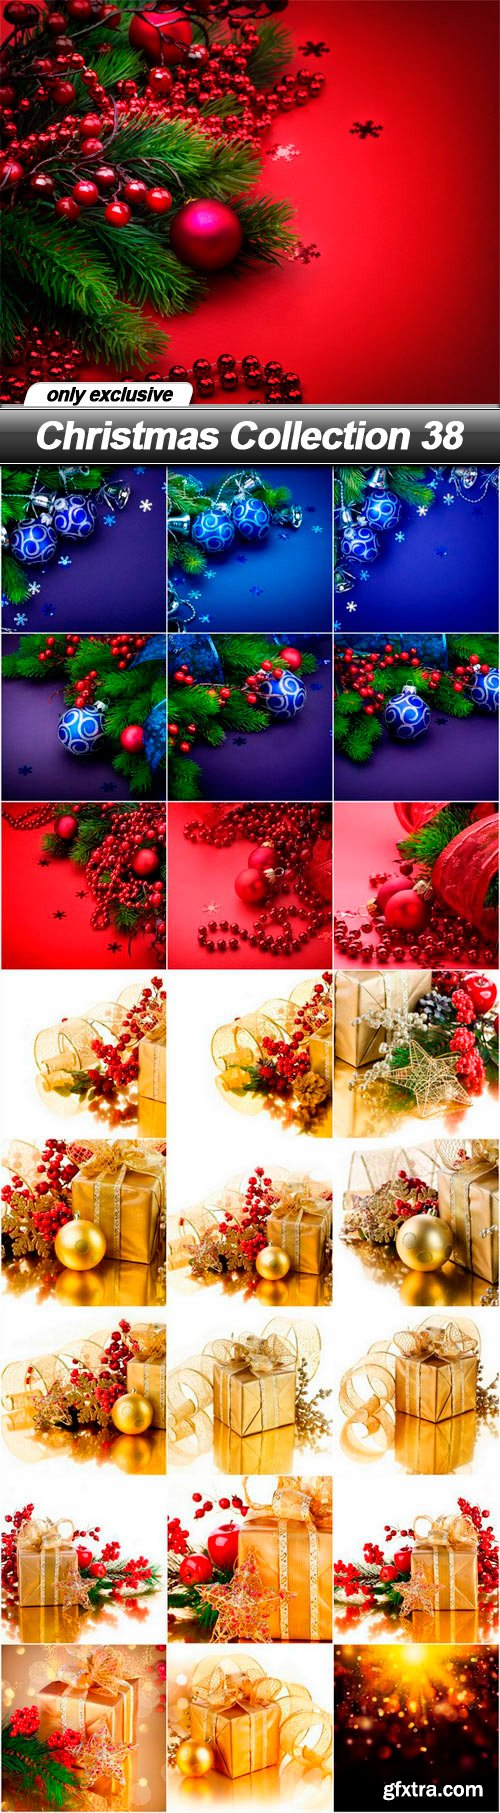 Christmas Collection 38 - 25 UHQ JPEG